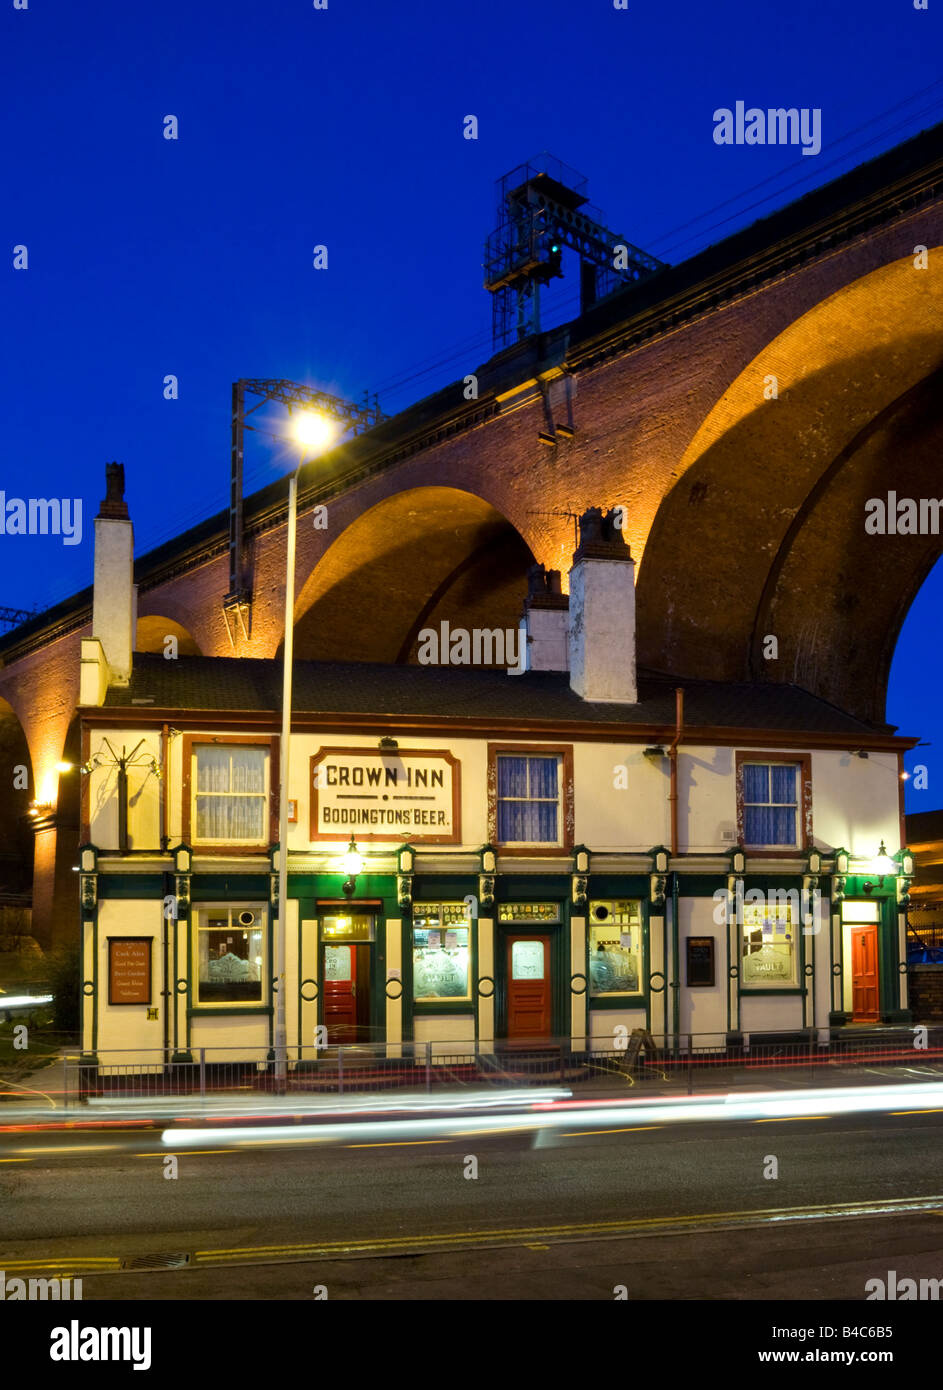 The Crown Inn Public House & Stockport Viaduct at Night, Stockport, Greater Manchester, England, UK - Stock Image